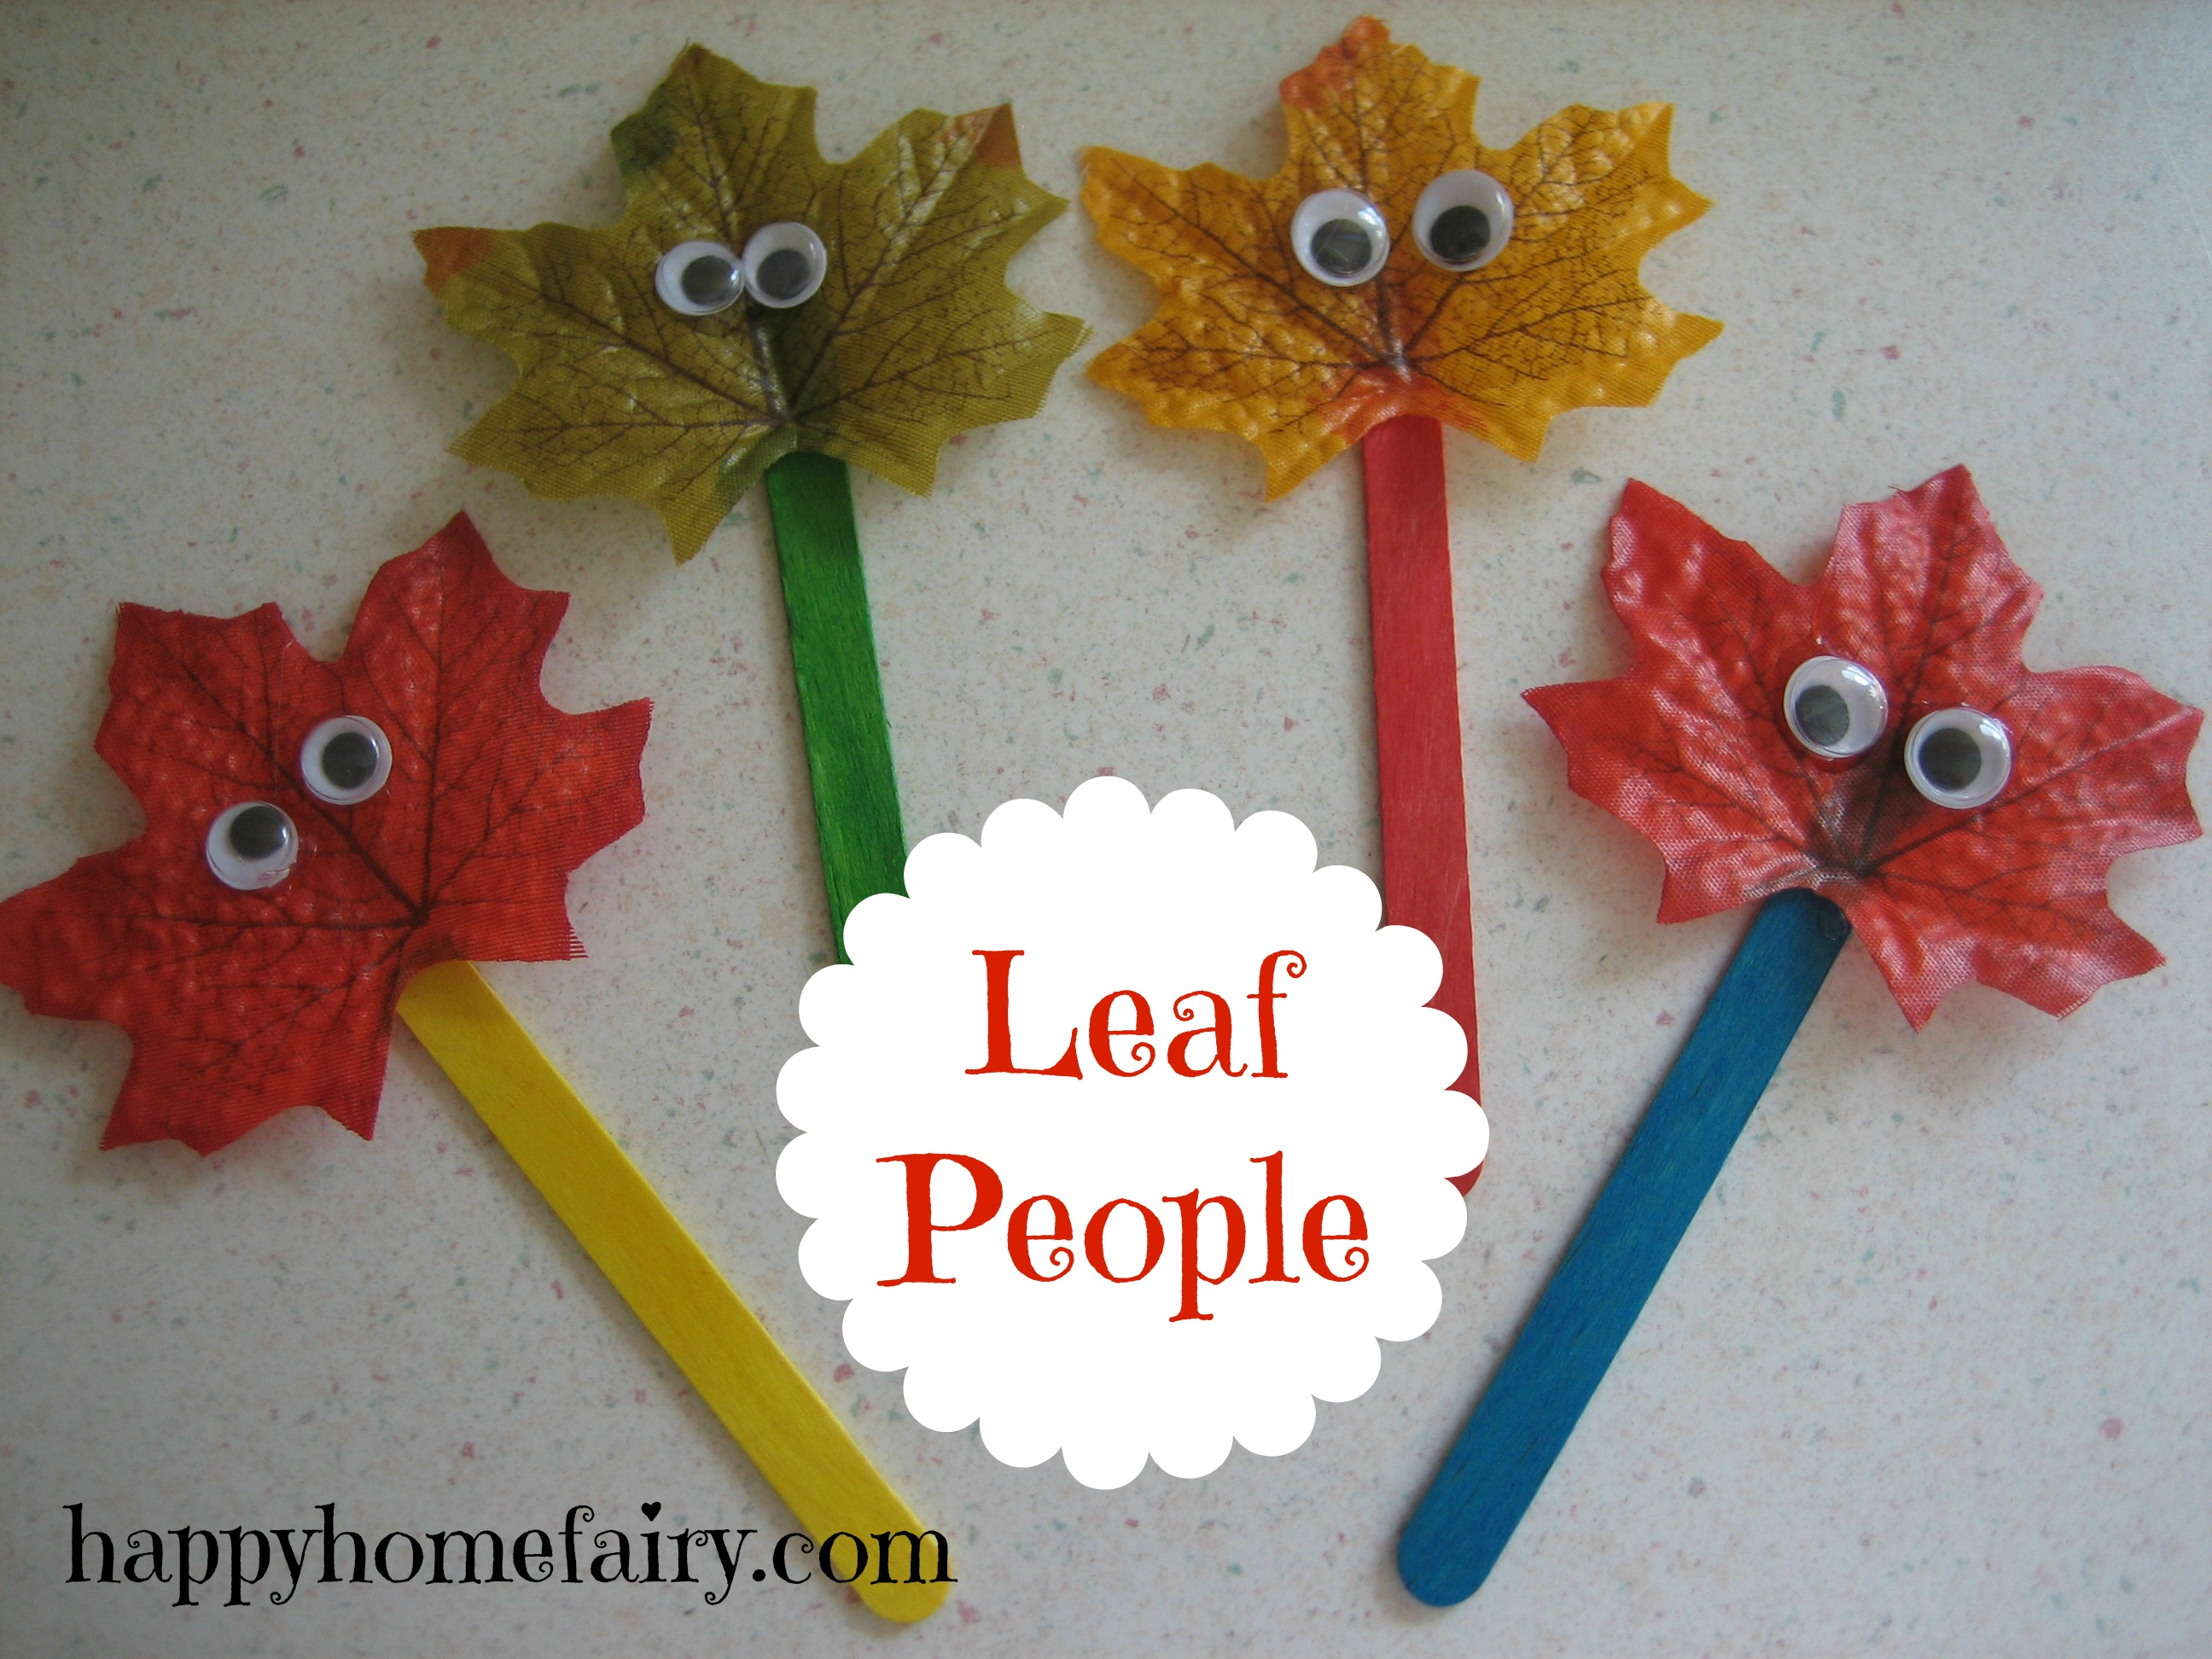 Leaf People Free Printable Happy Home Fairy